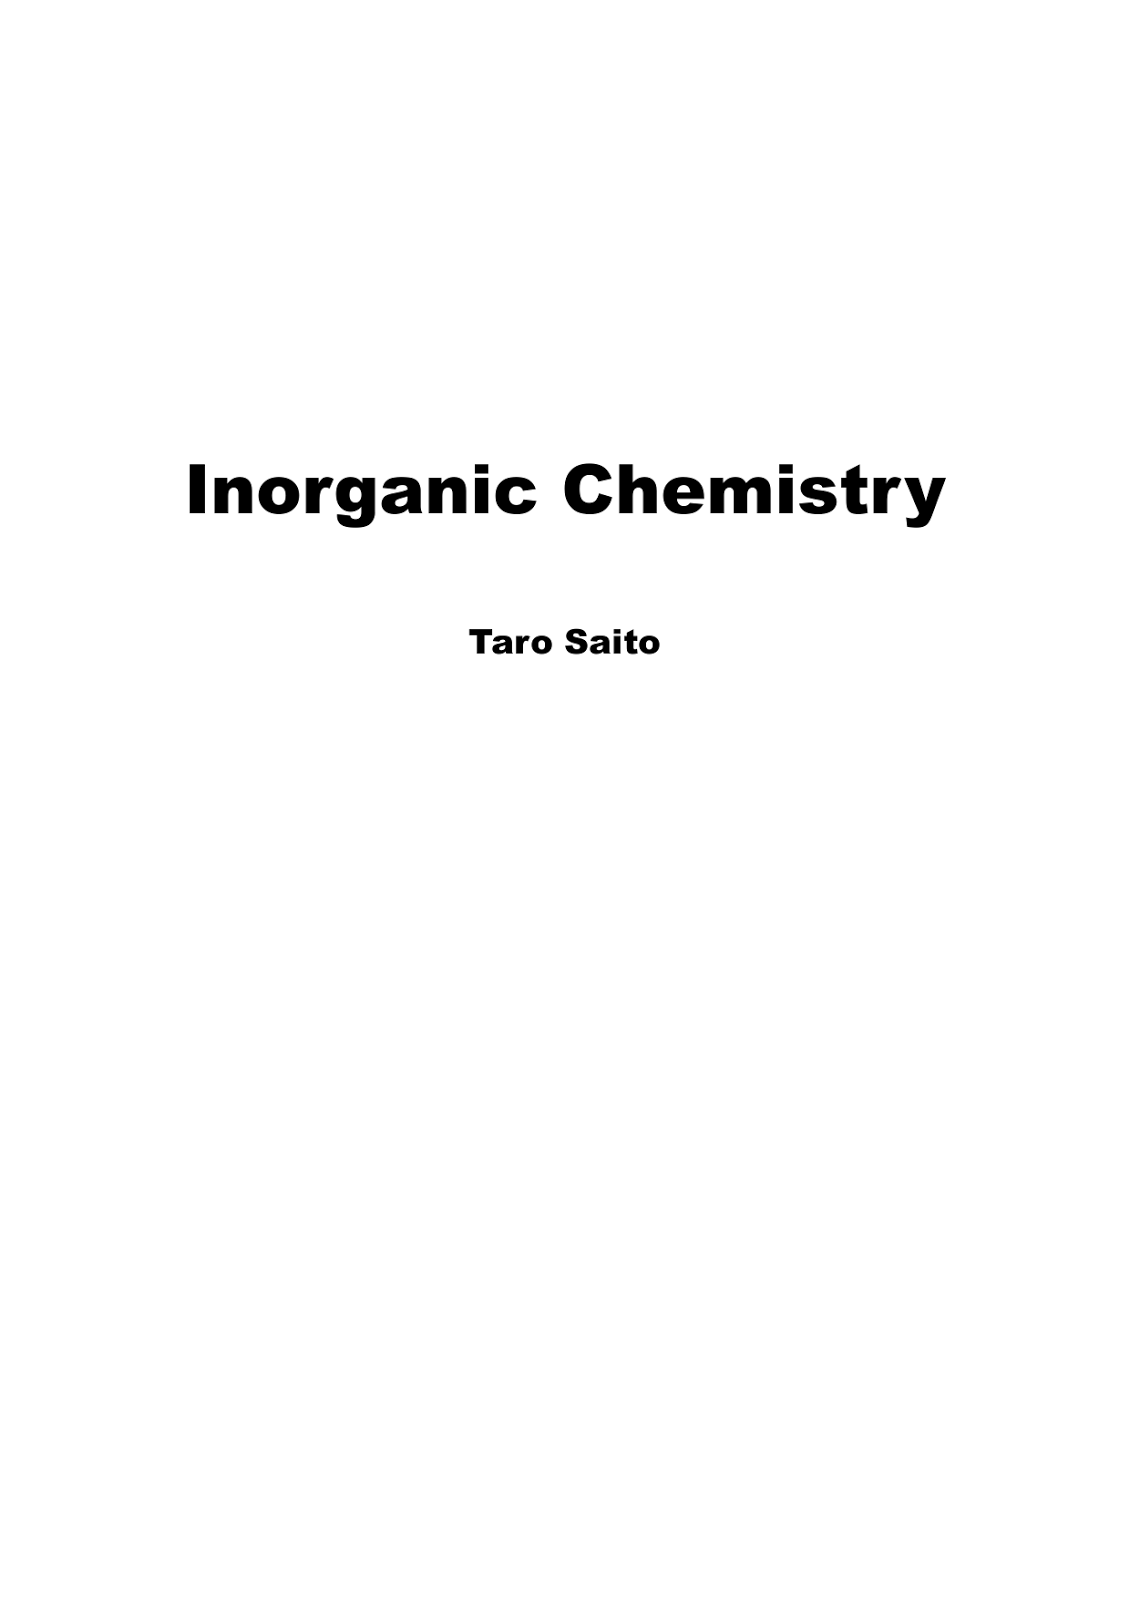 standard books on inorganic chemistry all bout chemistry inorganic chemistry by taro saito